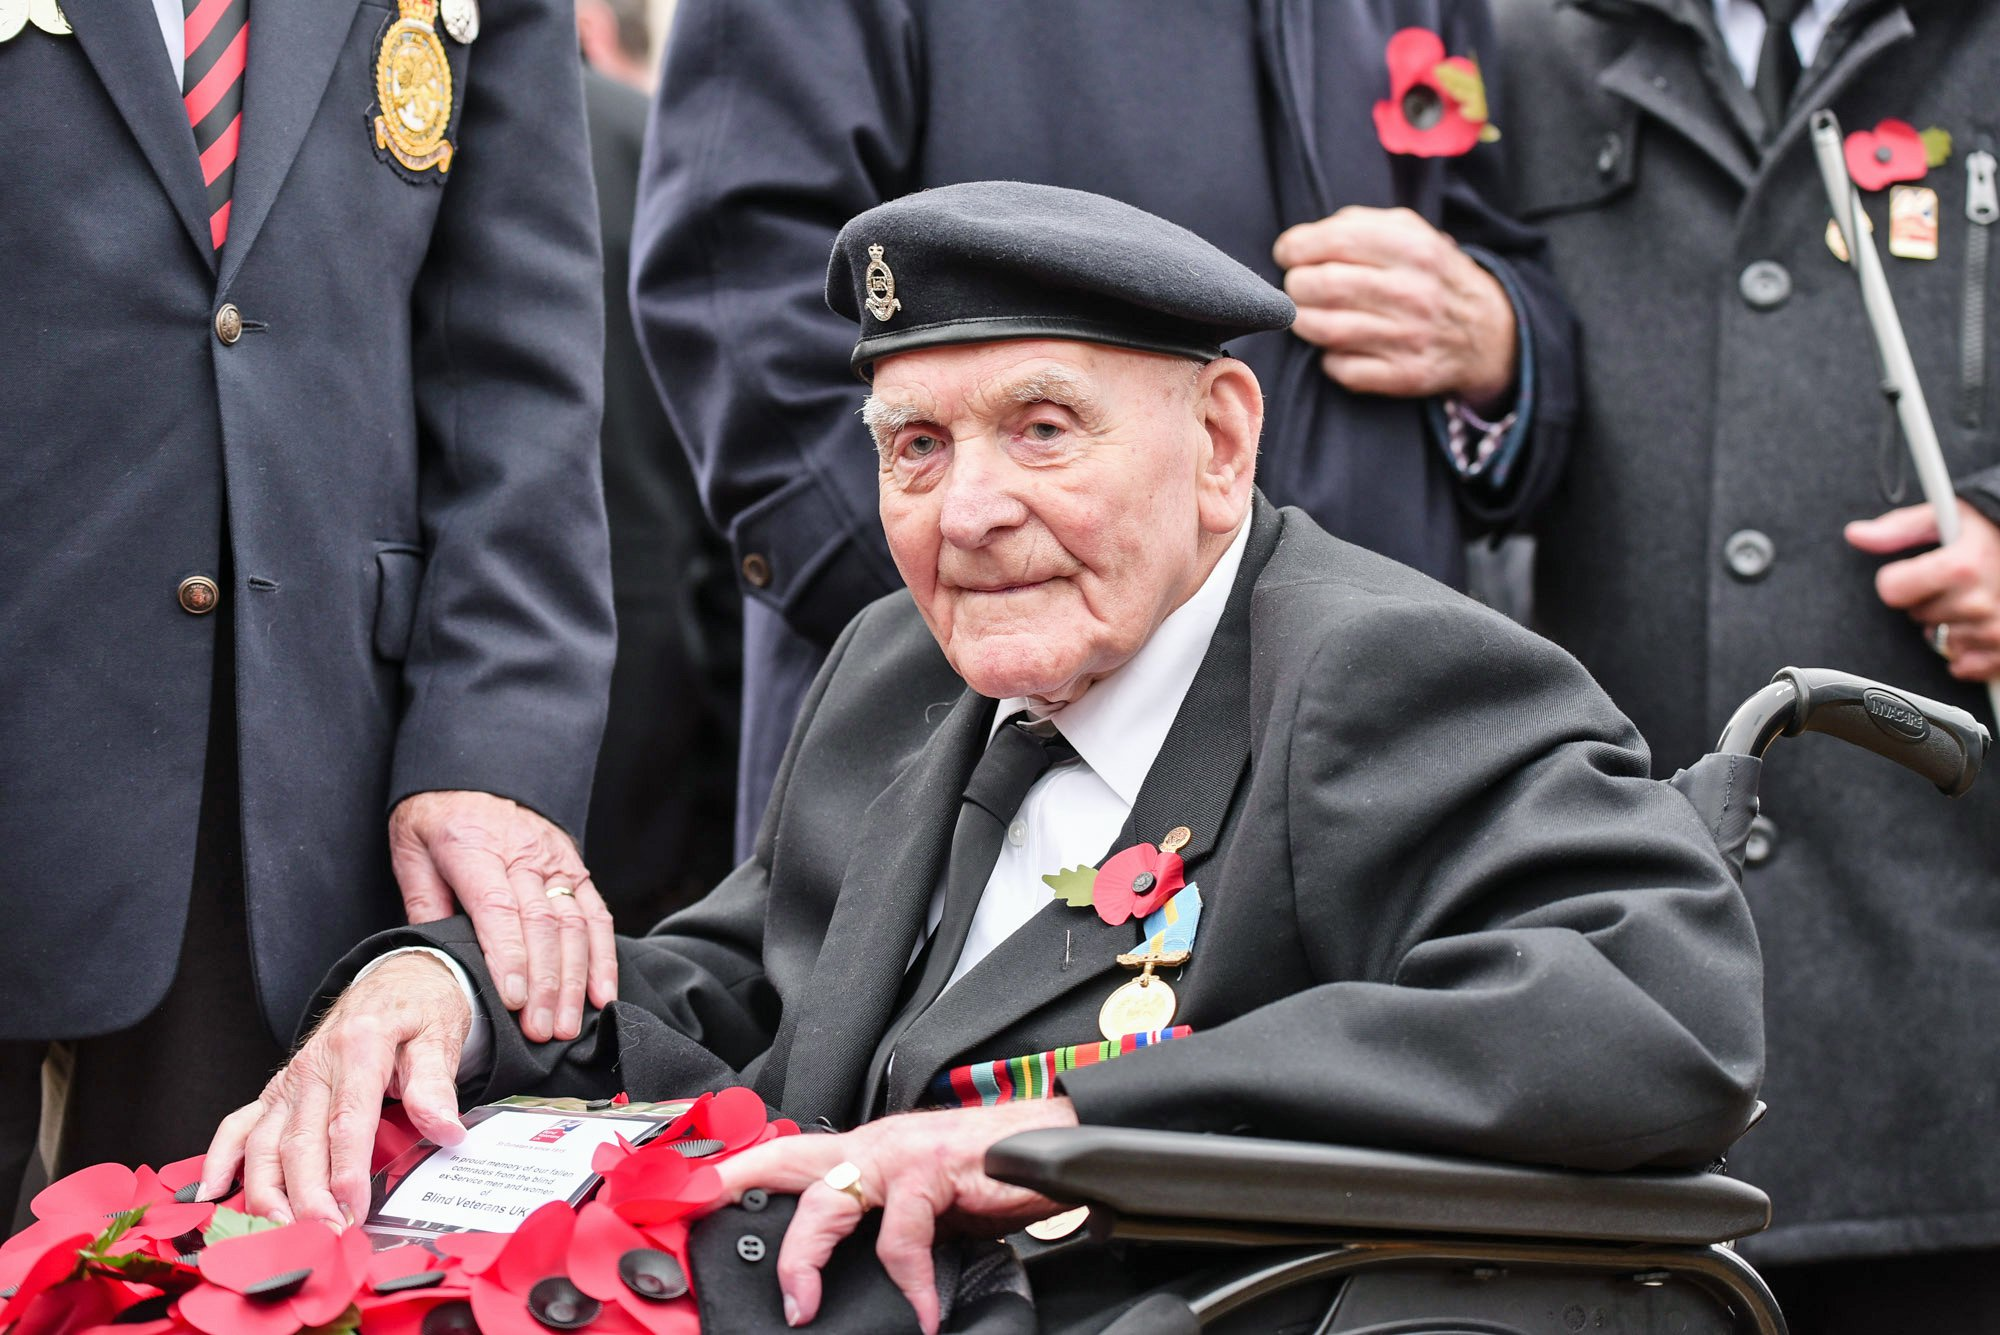 Undated handout photo issued by Blind Veterans UK of Ron Freer, who will be the oldest veteran to attend the cenotaph on Sunday for the remembrance service. PRESS ASSOCIATION Photo. Issue date: Thursday November 8, 2018. The blind veteran from Cliftonville, Kent, is set to march at the Cenotaph in London this Remembrance Sunday with the charity Blind Veterans UK. See PA story MEMORIAL Armistice. Photo credit should read: Blind Veterans UK/PA Wire NOTE TO EDITORS: This handout photo may only be used in for editorial reporting purposes for the contemporaneous illustration of events, things or the people in the image or facts mentioned in the caption. Reuse of the picture may require further permission from the copyright holder.